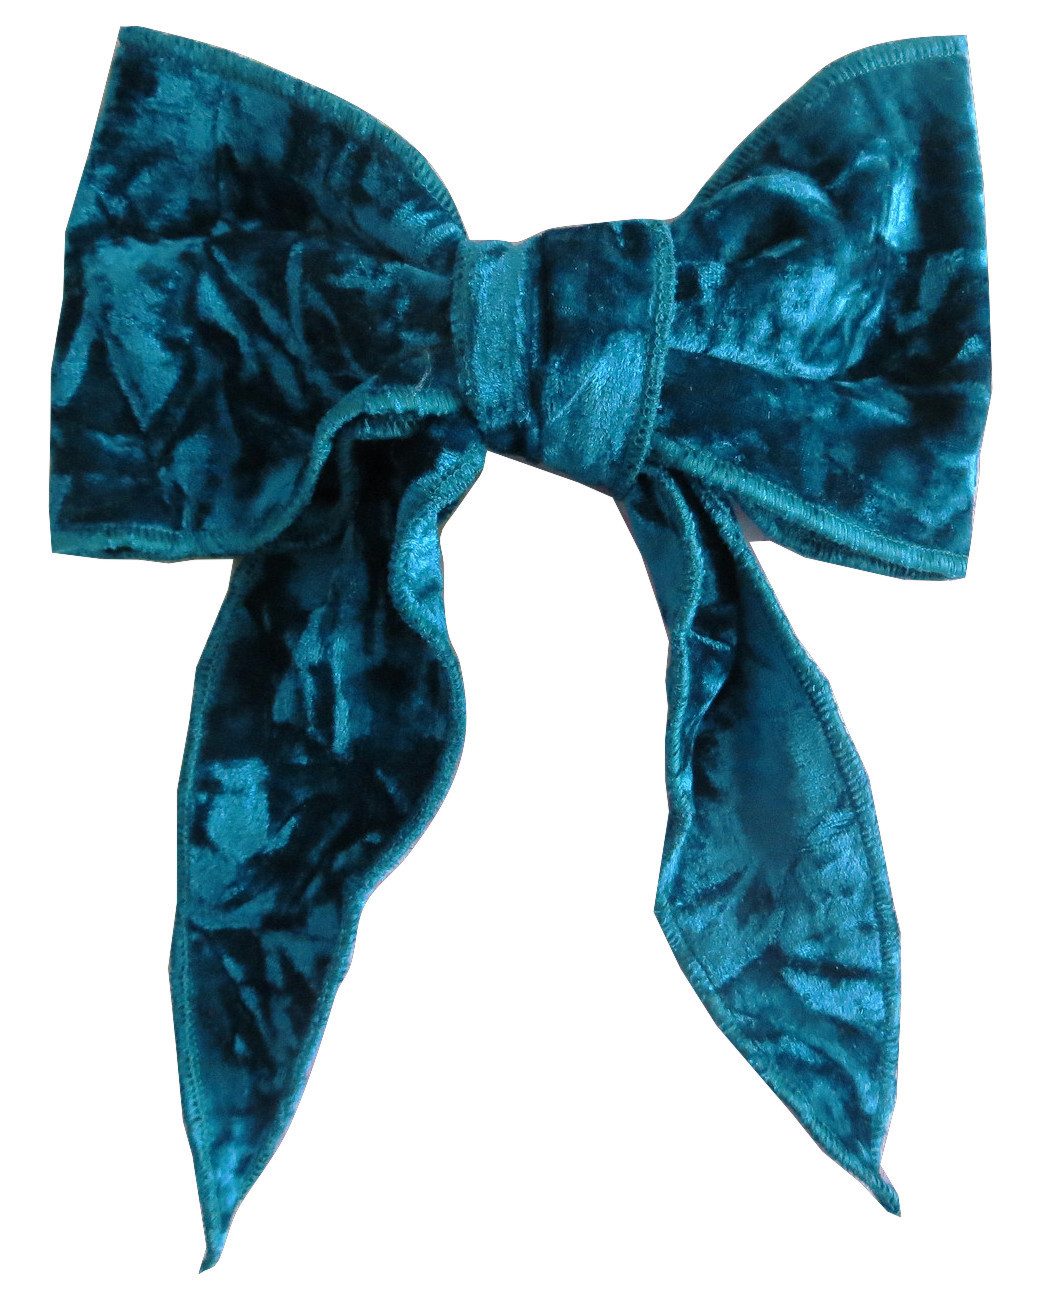 Teal blue velvet bow with tails